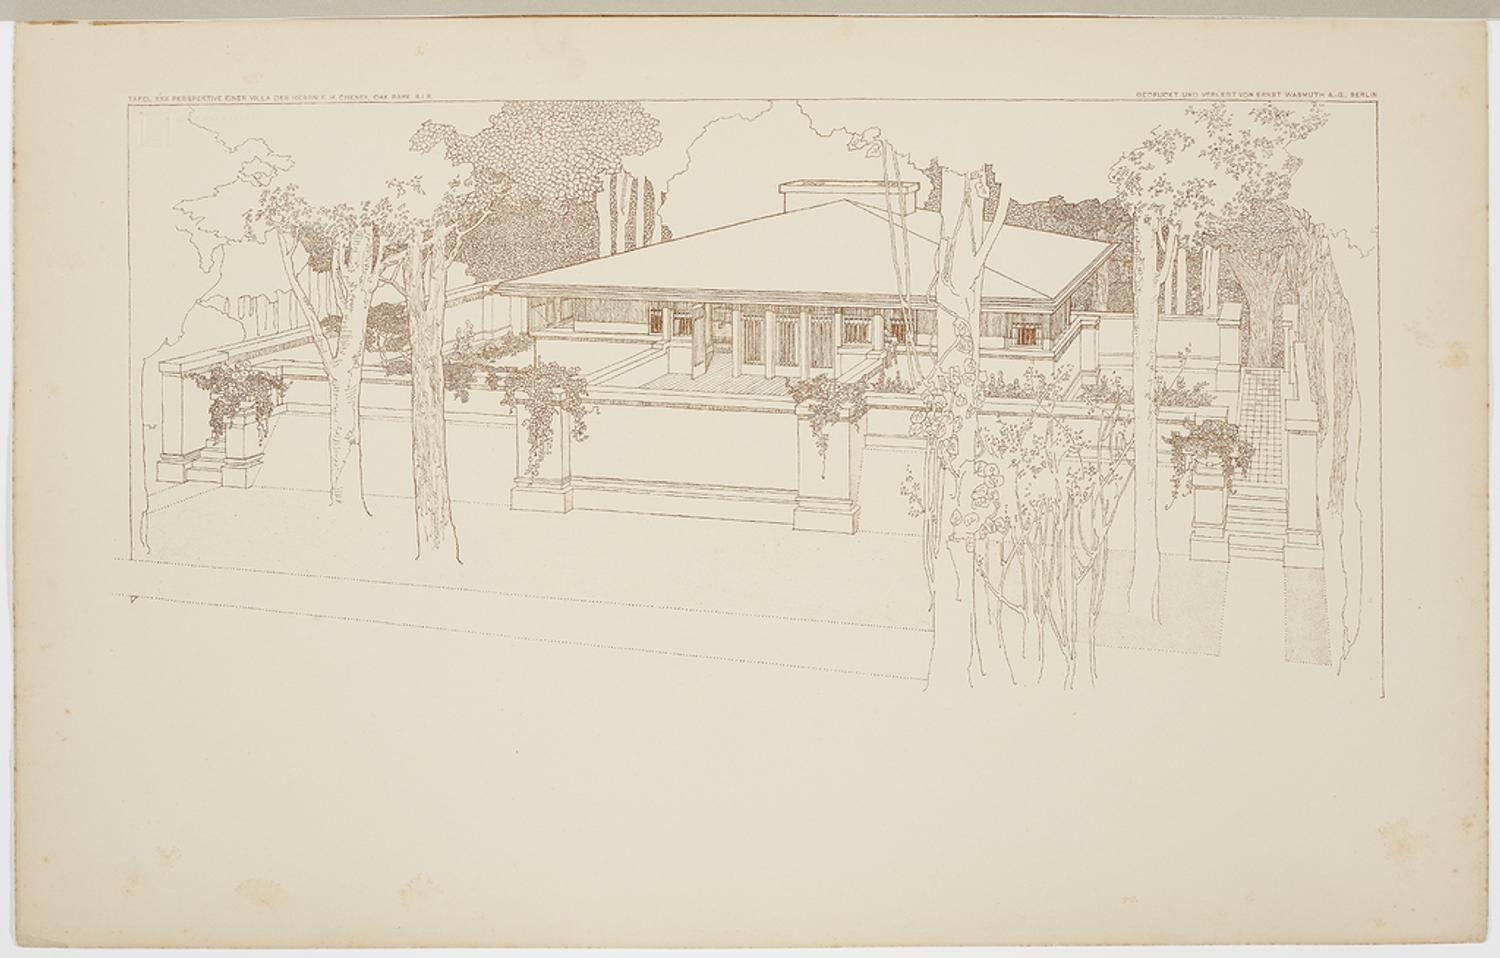 Frank Lloyd Wright Framed Prints Milwaukee Art Museum Celebrates 150th Anniversary Of Frank